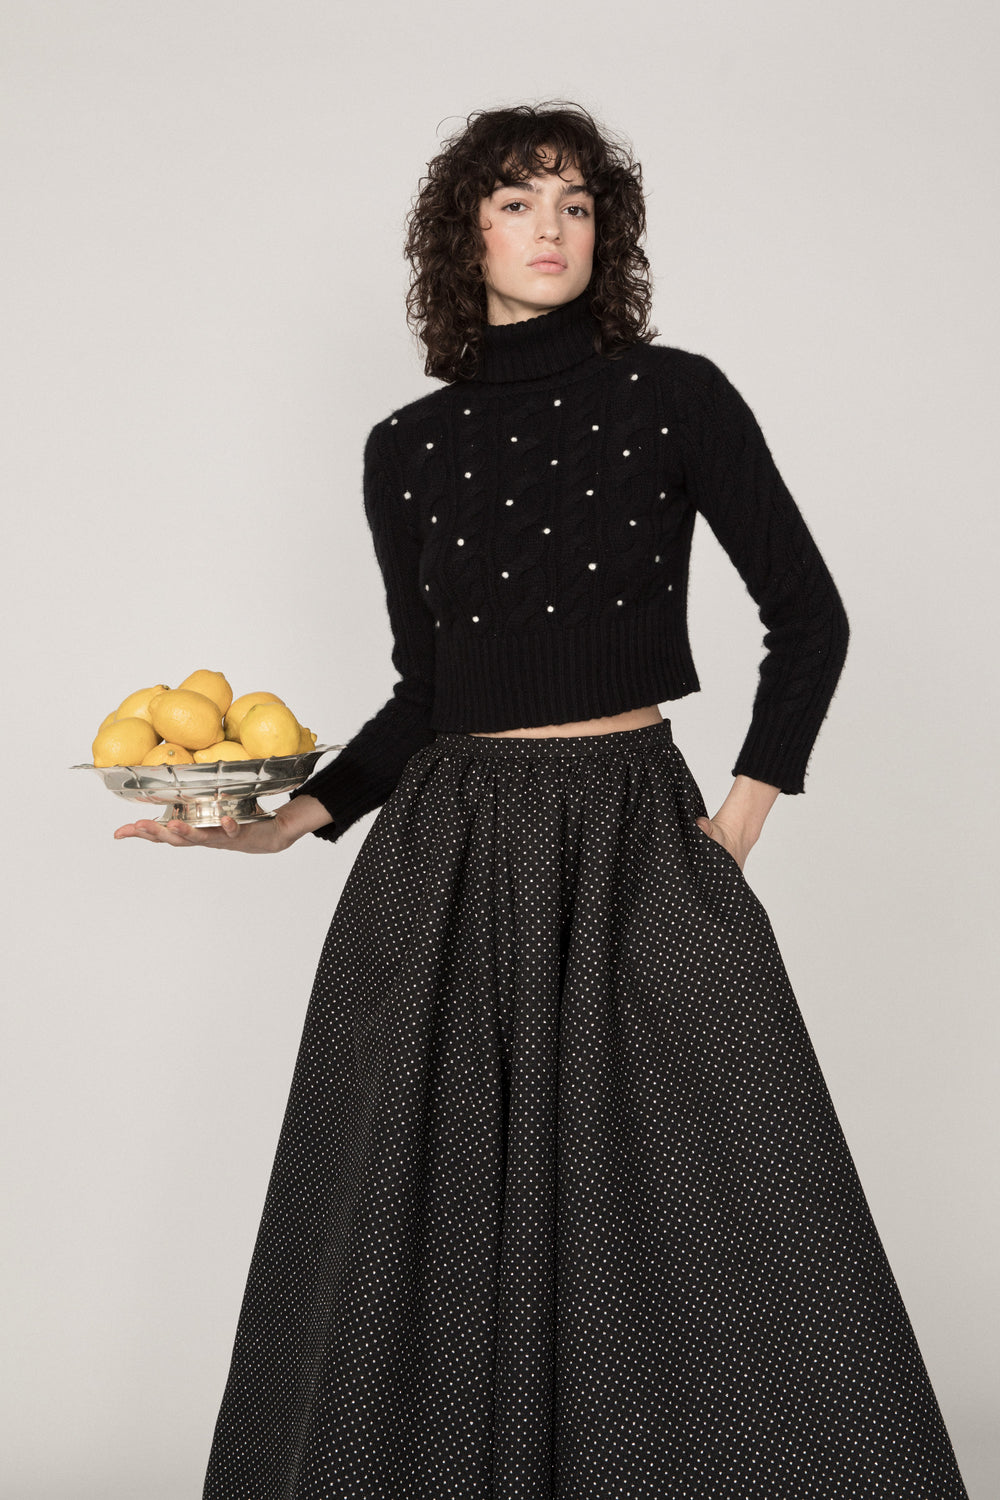 Rosie Assoulin Fall 2019 Knit Polka Dot Turtleneck Sweater. Cozy cashmere turtleneck. Needle-felted polka dots. Sim fit. Cropped cut. Black. 100% Cashmere. Sizes XS - L.